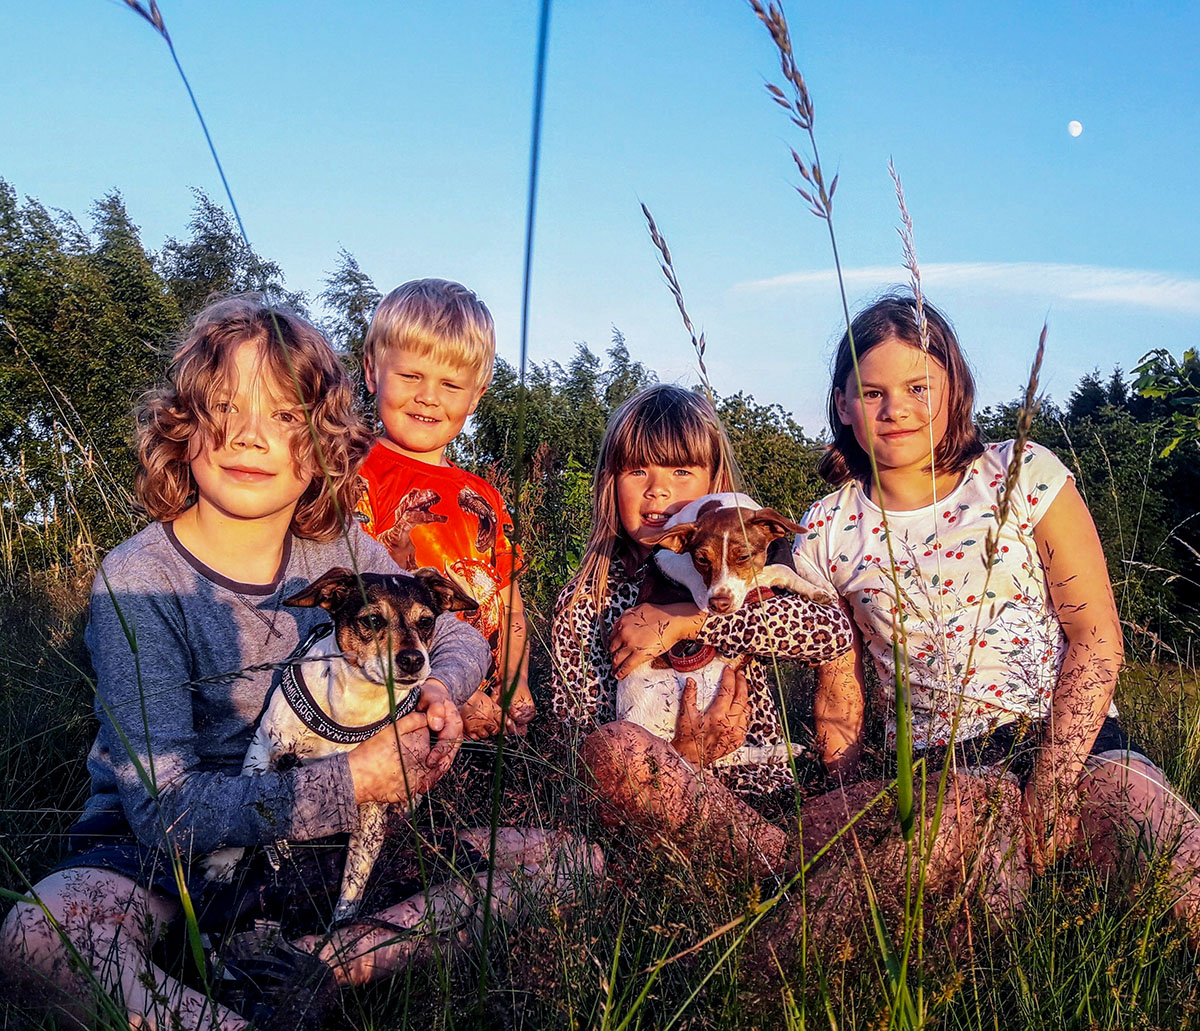 The farm dogs Milou and Ronja are very friendly and often play with the kids.